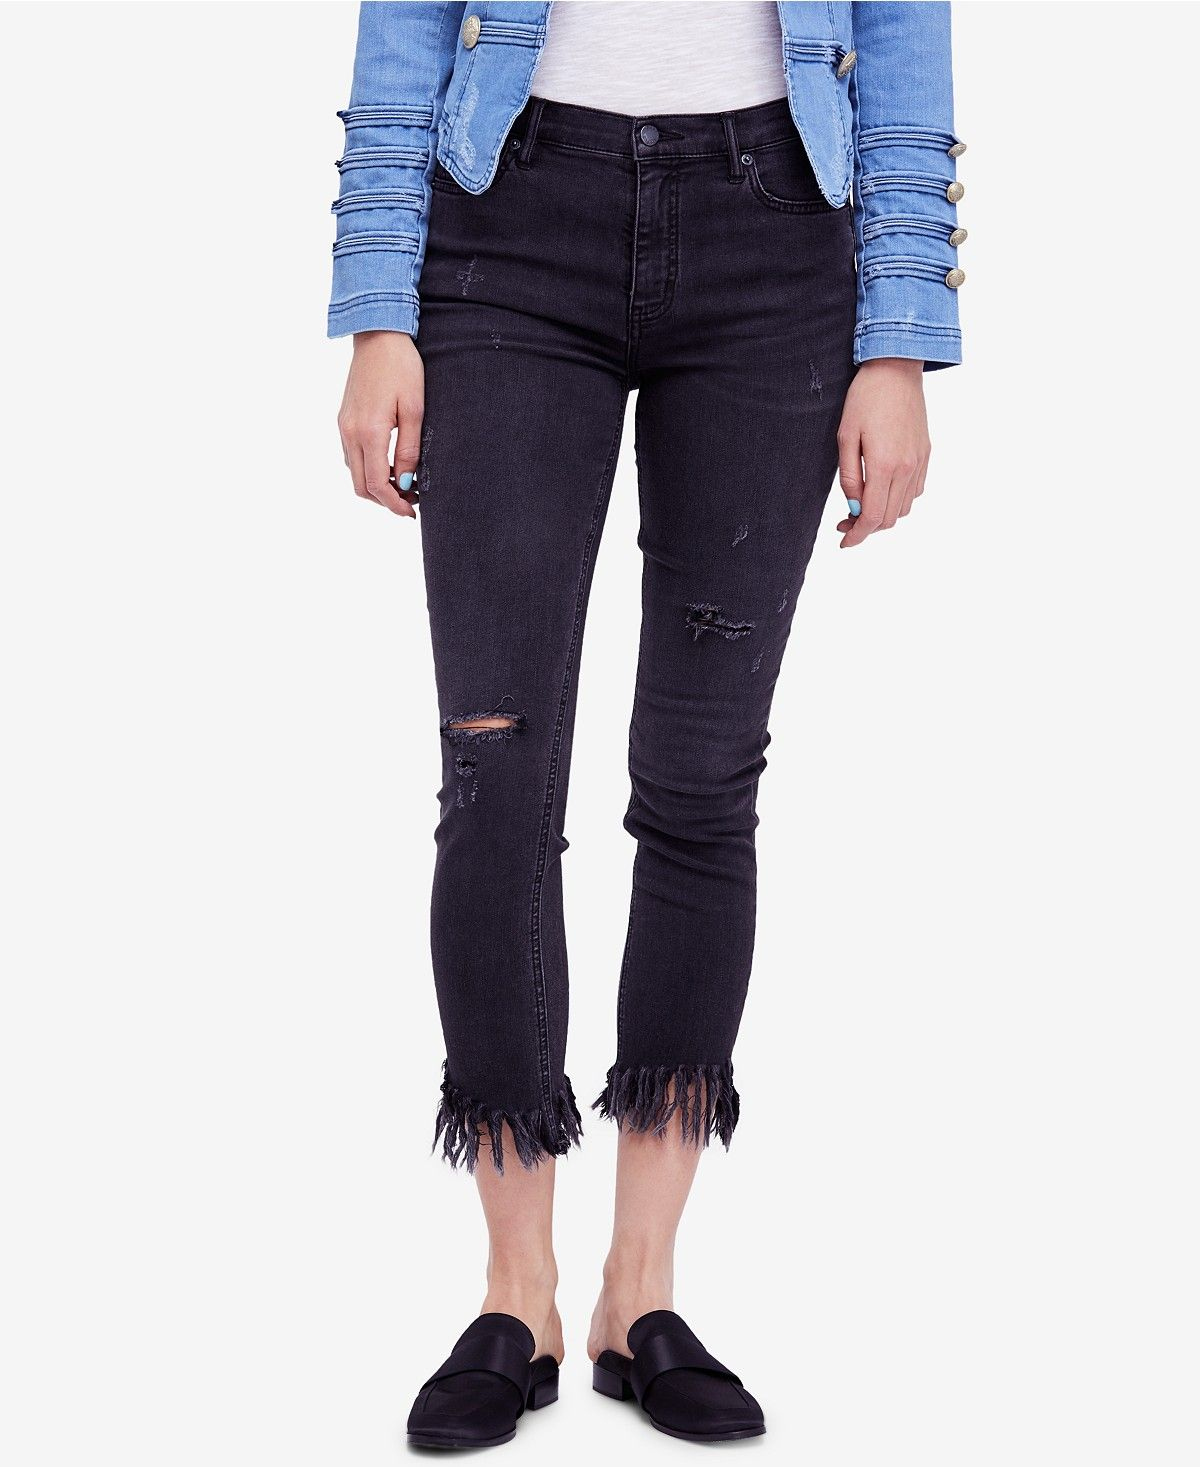 Free People Womens Ripped Skinny Jean